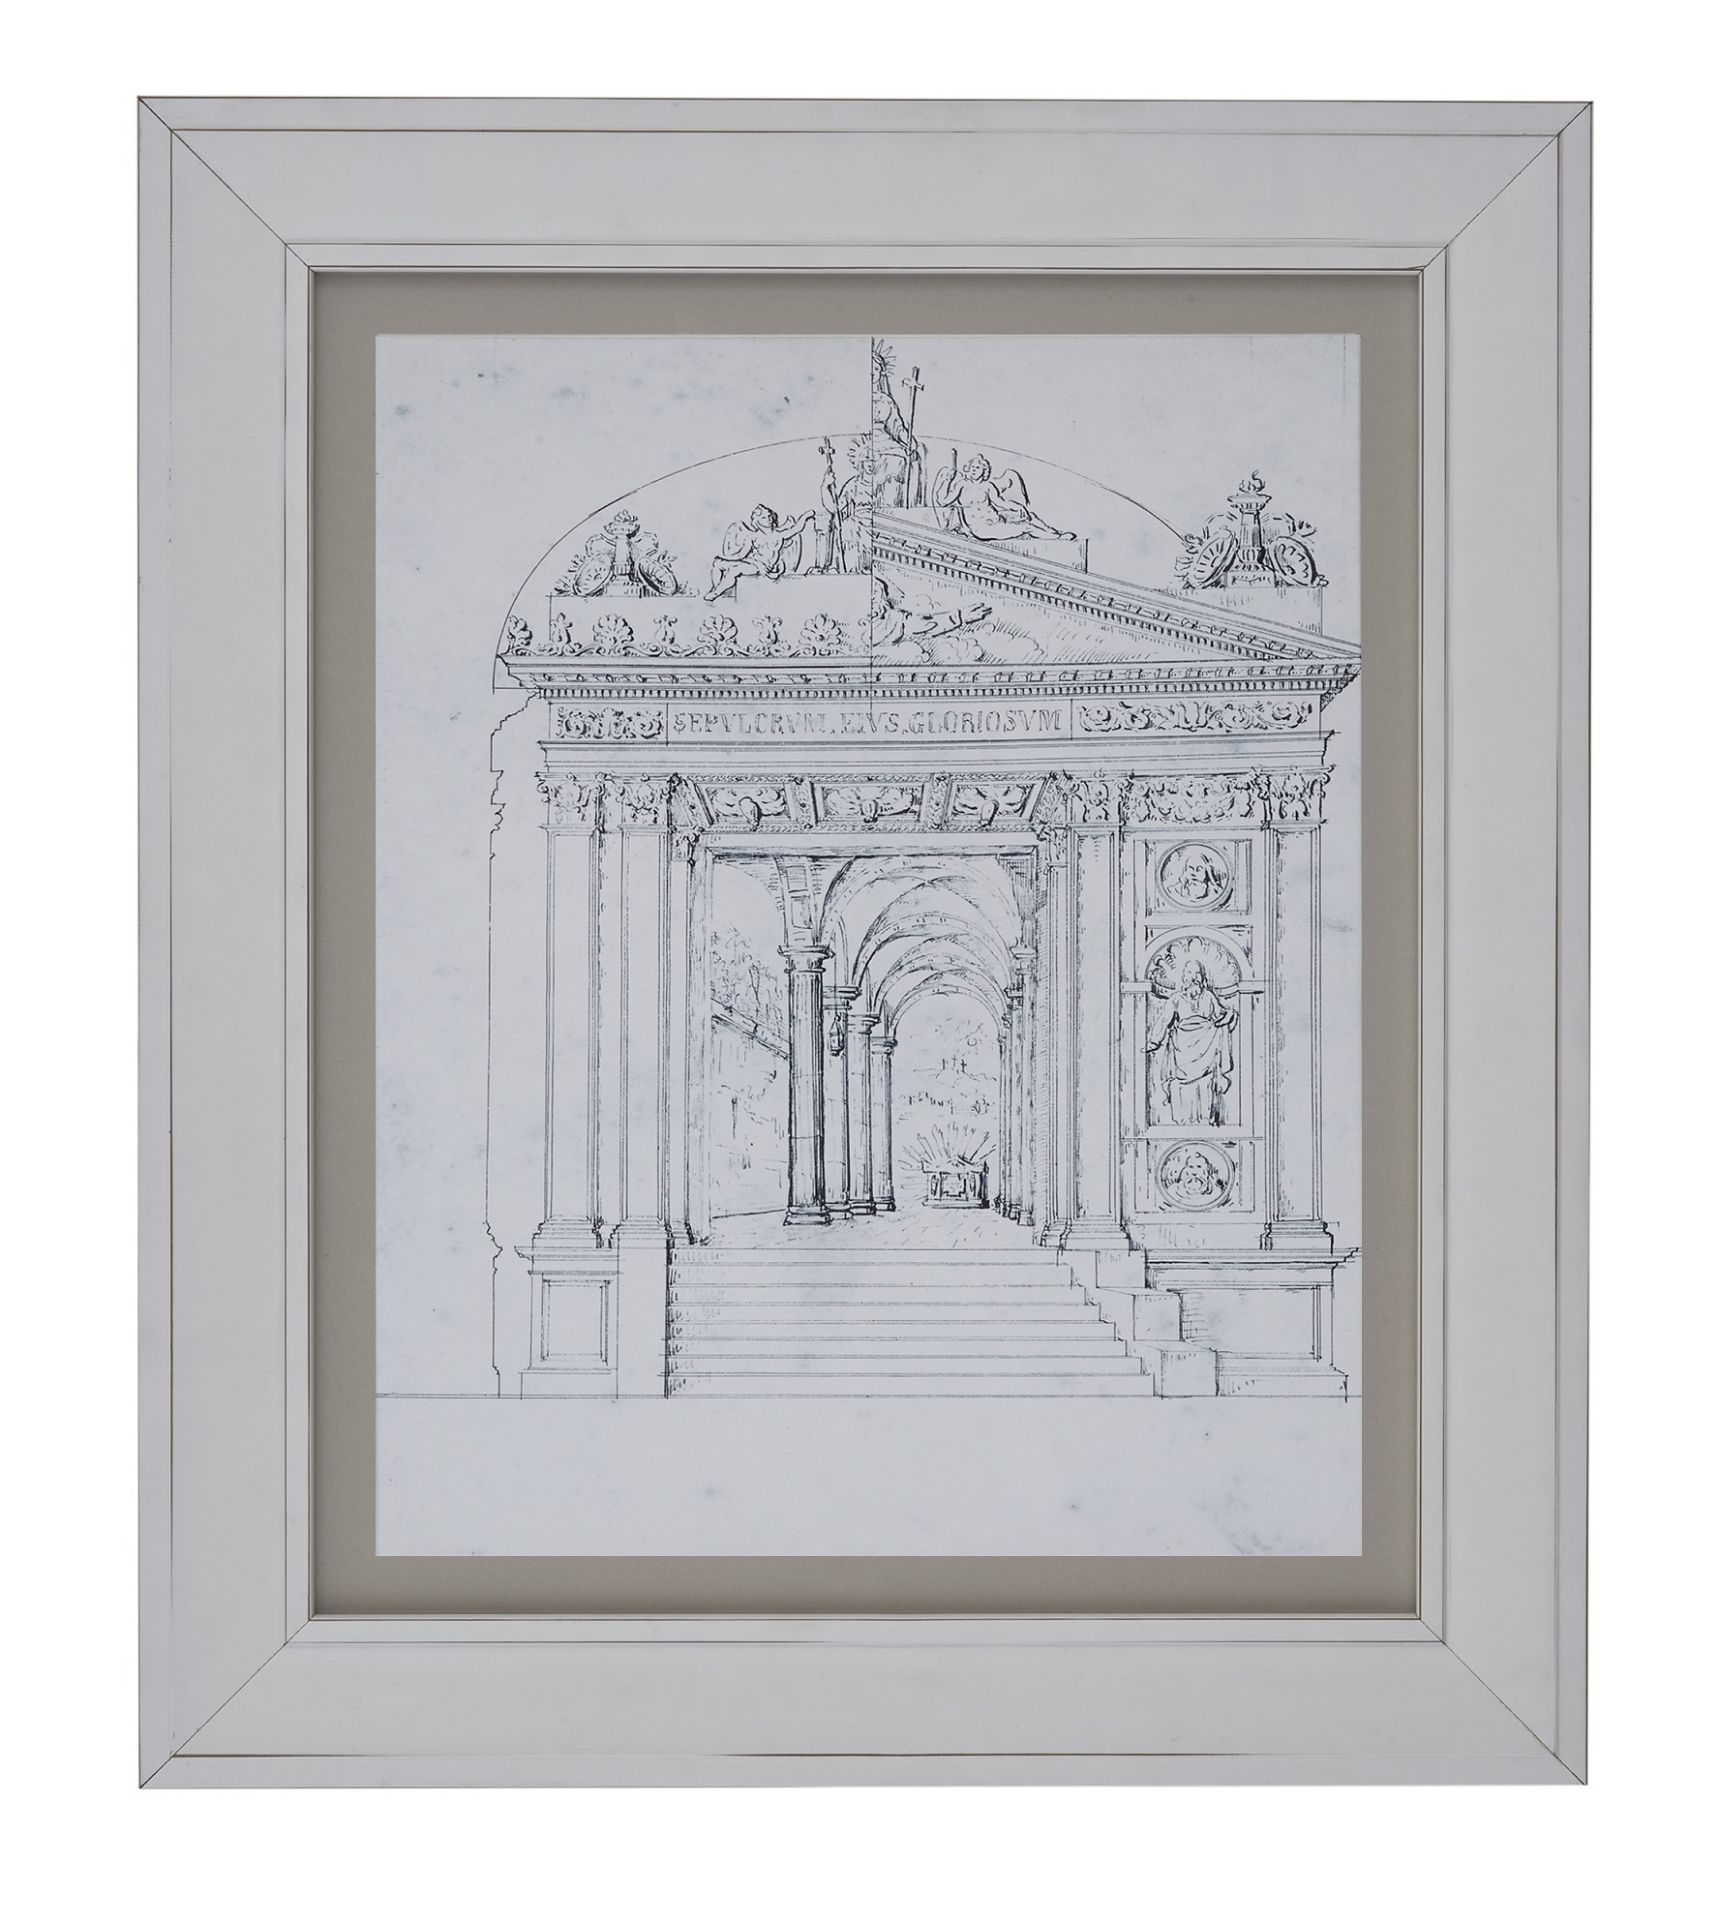 Lot 48 - 124 items Mixed Lot - Brand New Interior Décor WallArt/Canvases from Arthouse, Approx RRP £1473.04